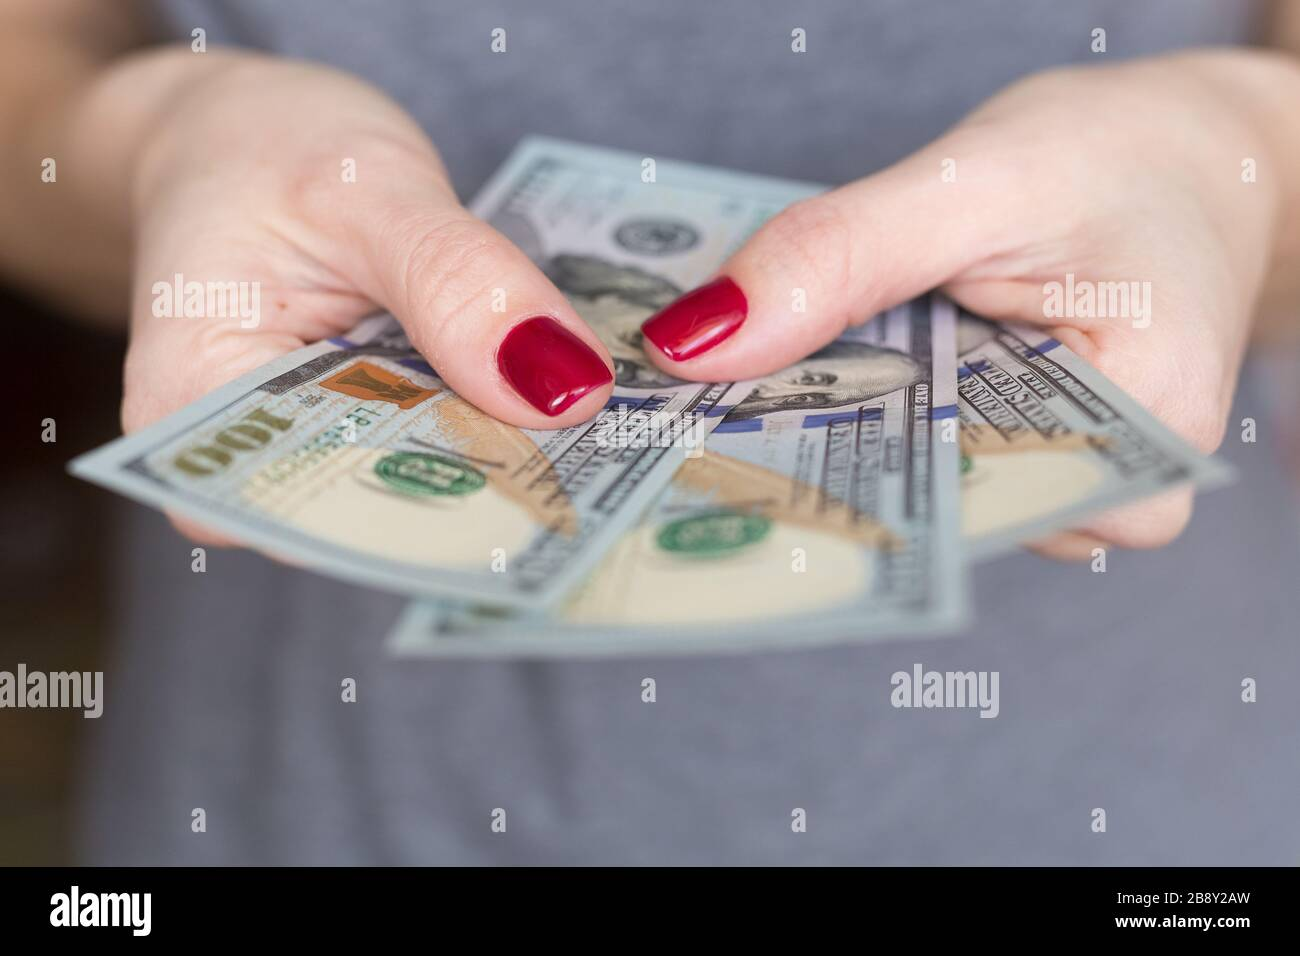 US Dollars banknotes. Money in a woman's hand. Lack of money. Unemployed. unemployment. Financial crisis. Credit. Loan. Stock Photo